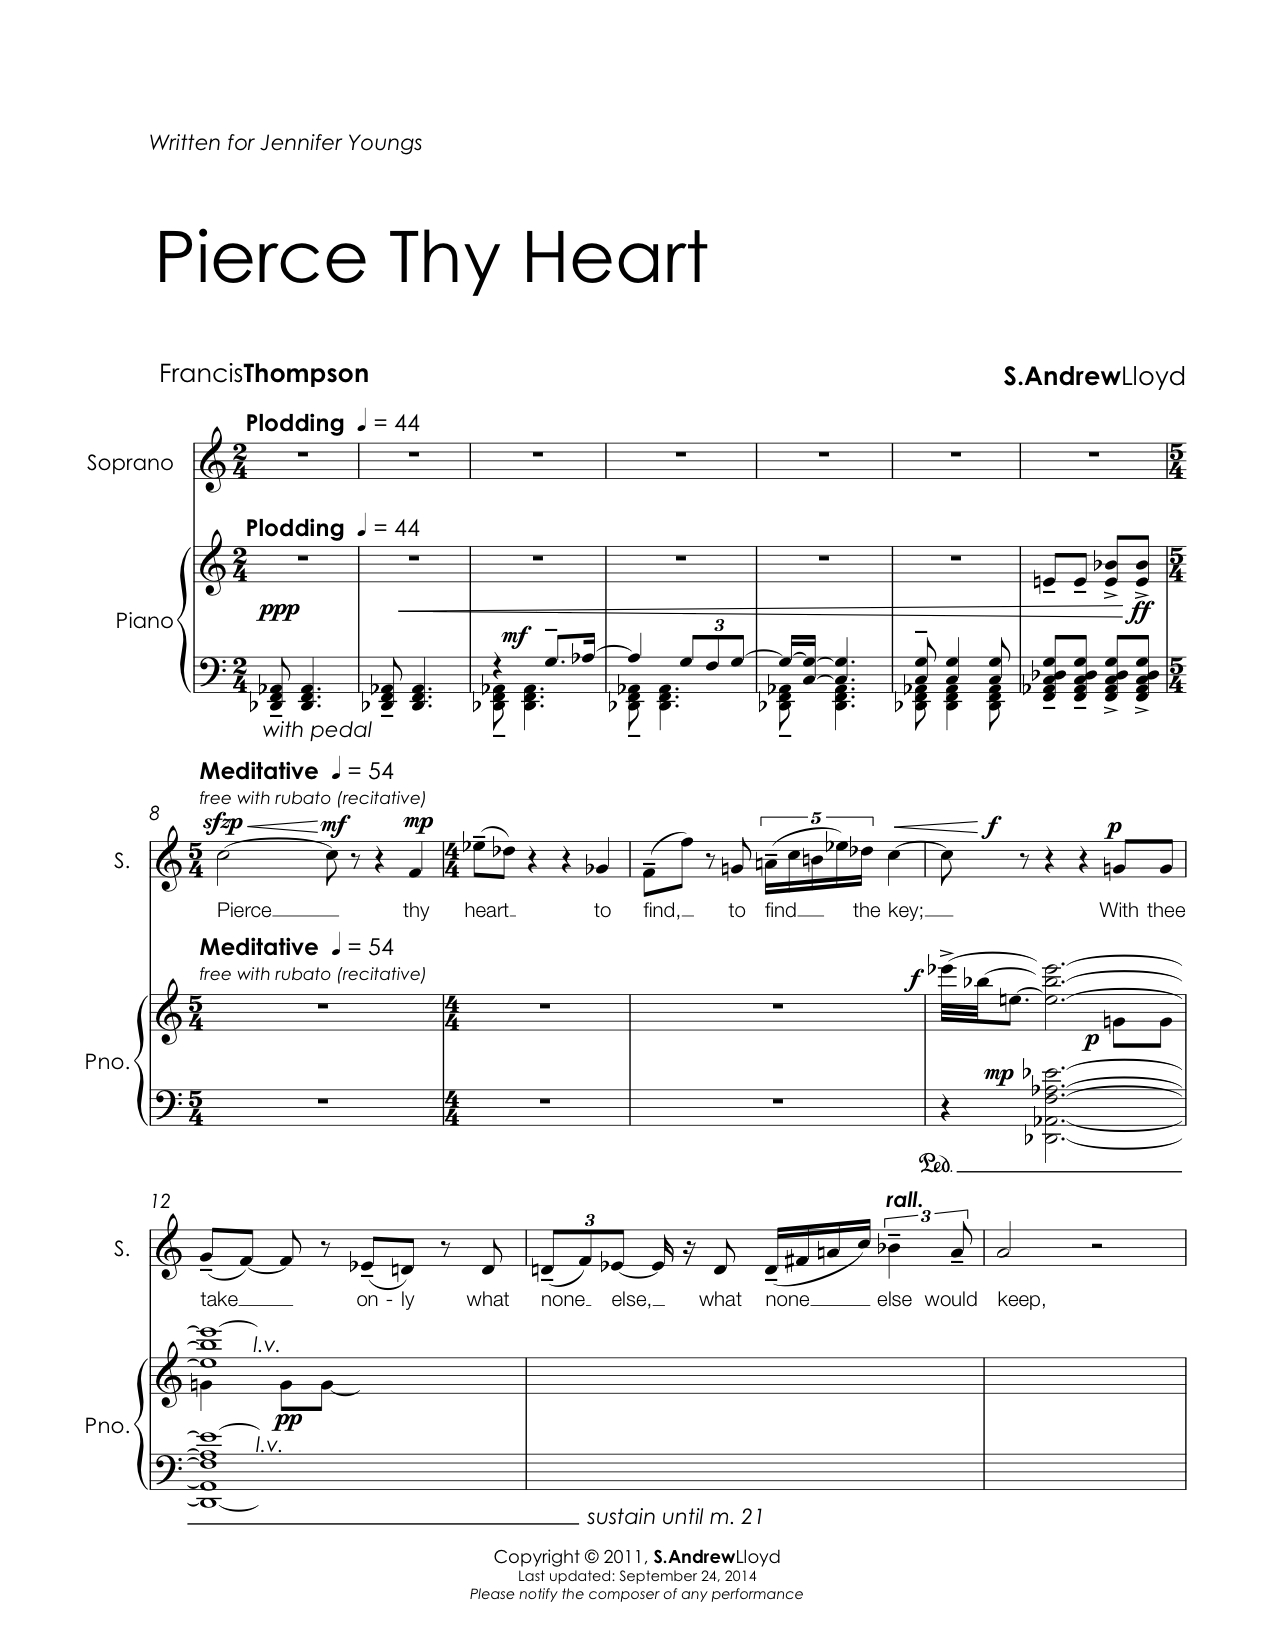 Pierce Thy Heart Sample 1.jpg